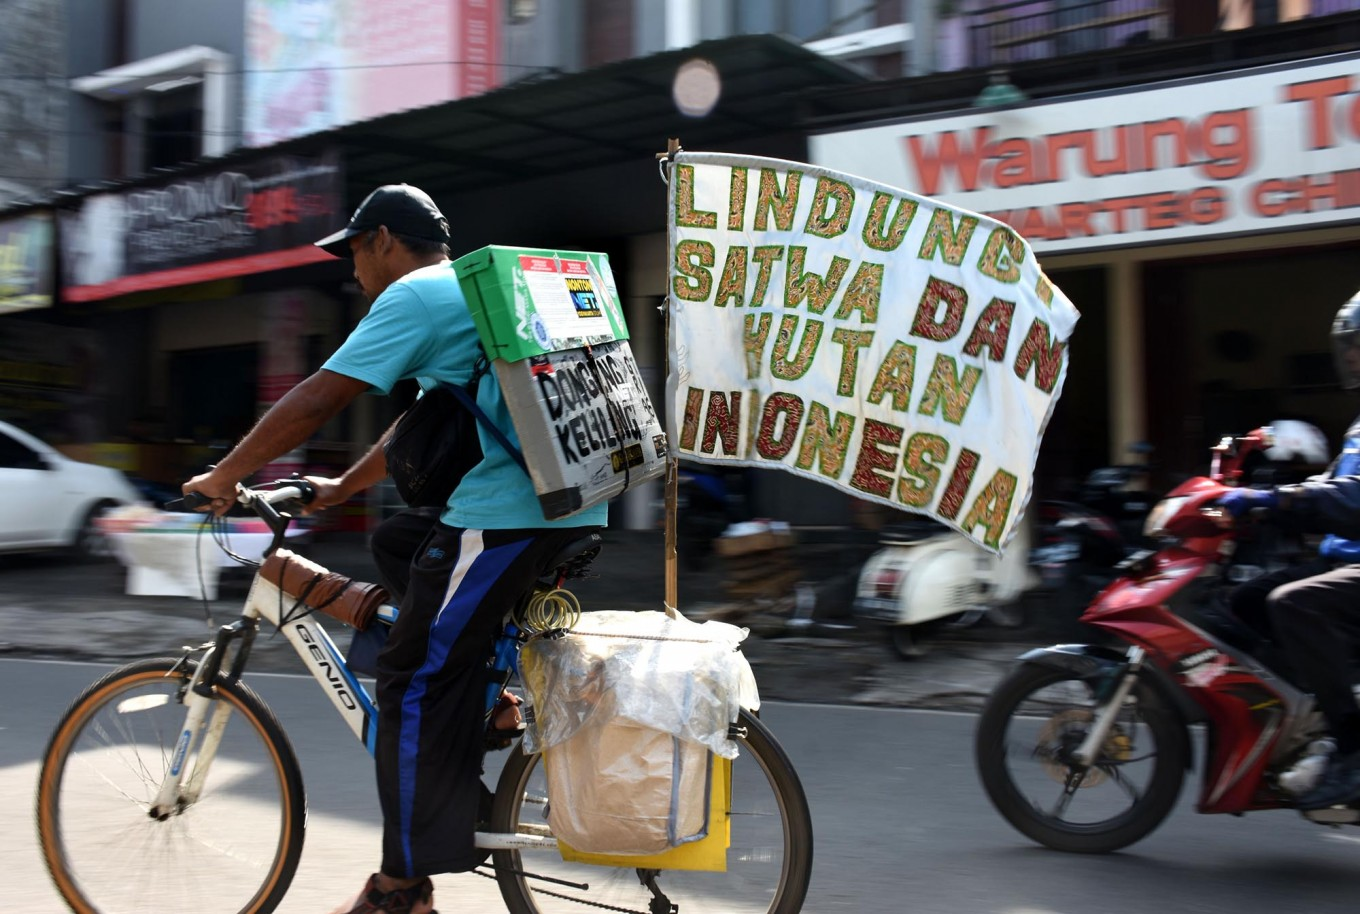 Samsudin rides a bicycle on his journey to tell stories about forests and animals to children in cities across Indonesia. JP/Aman Rochman